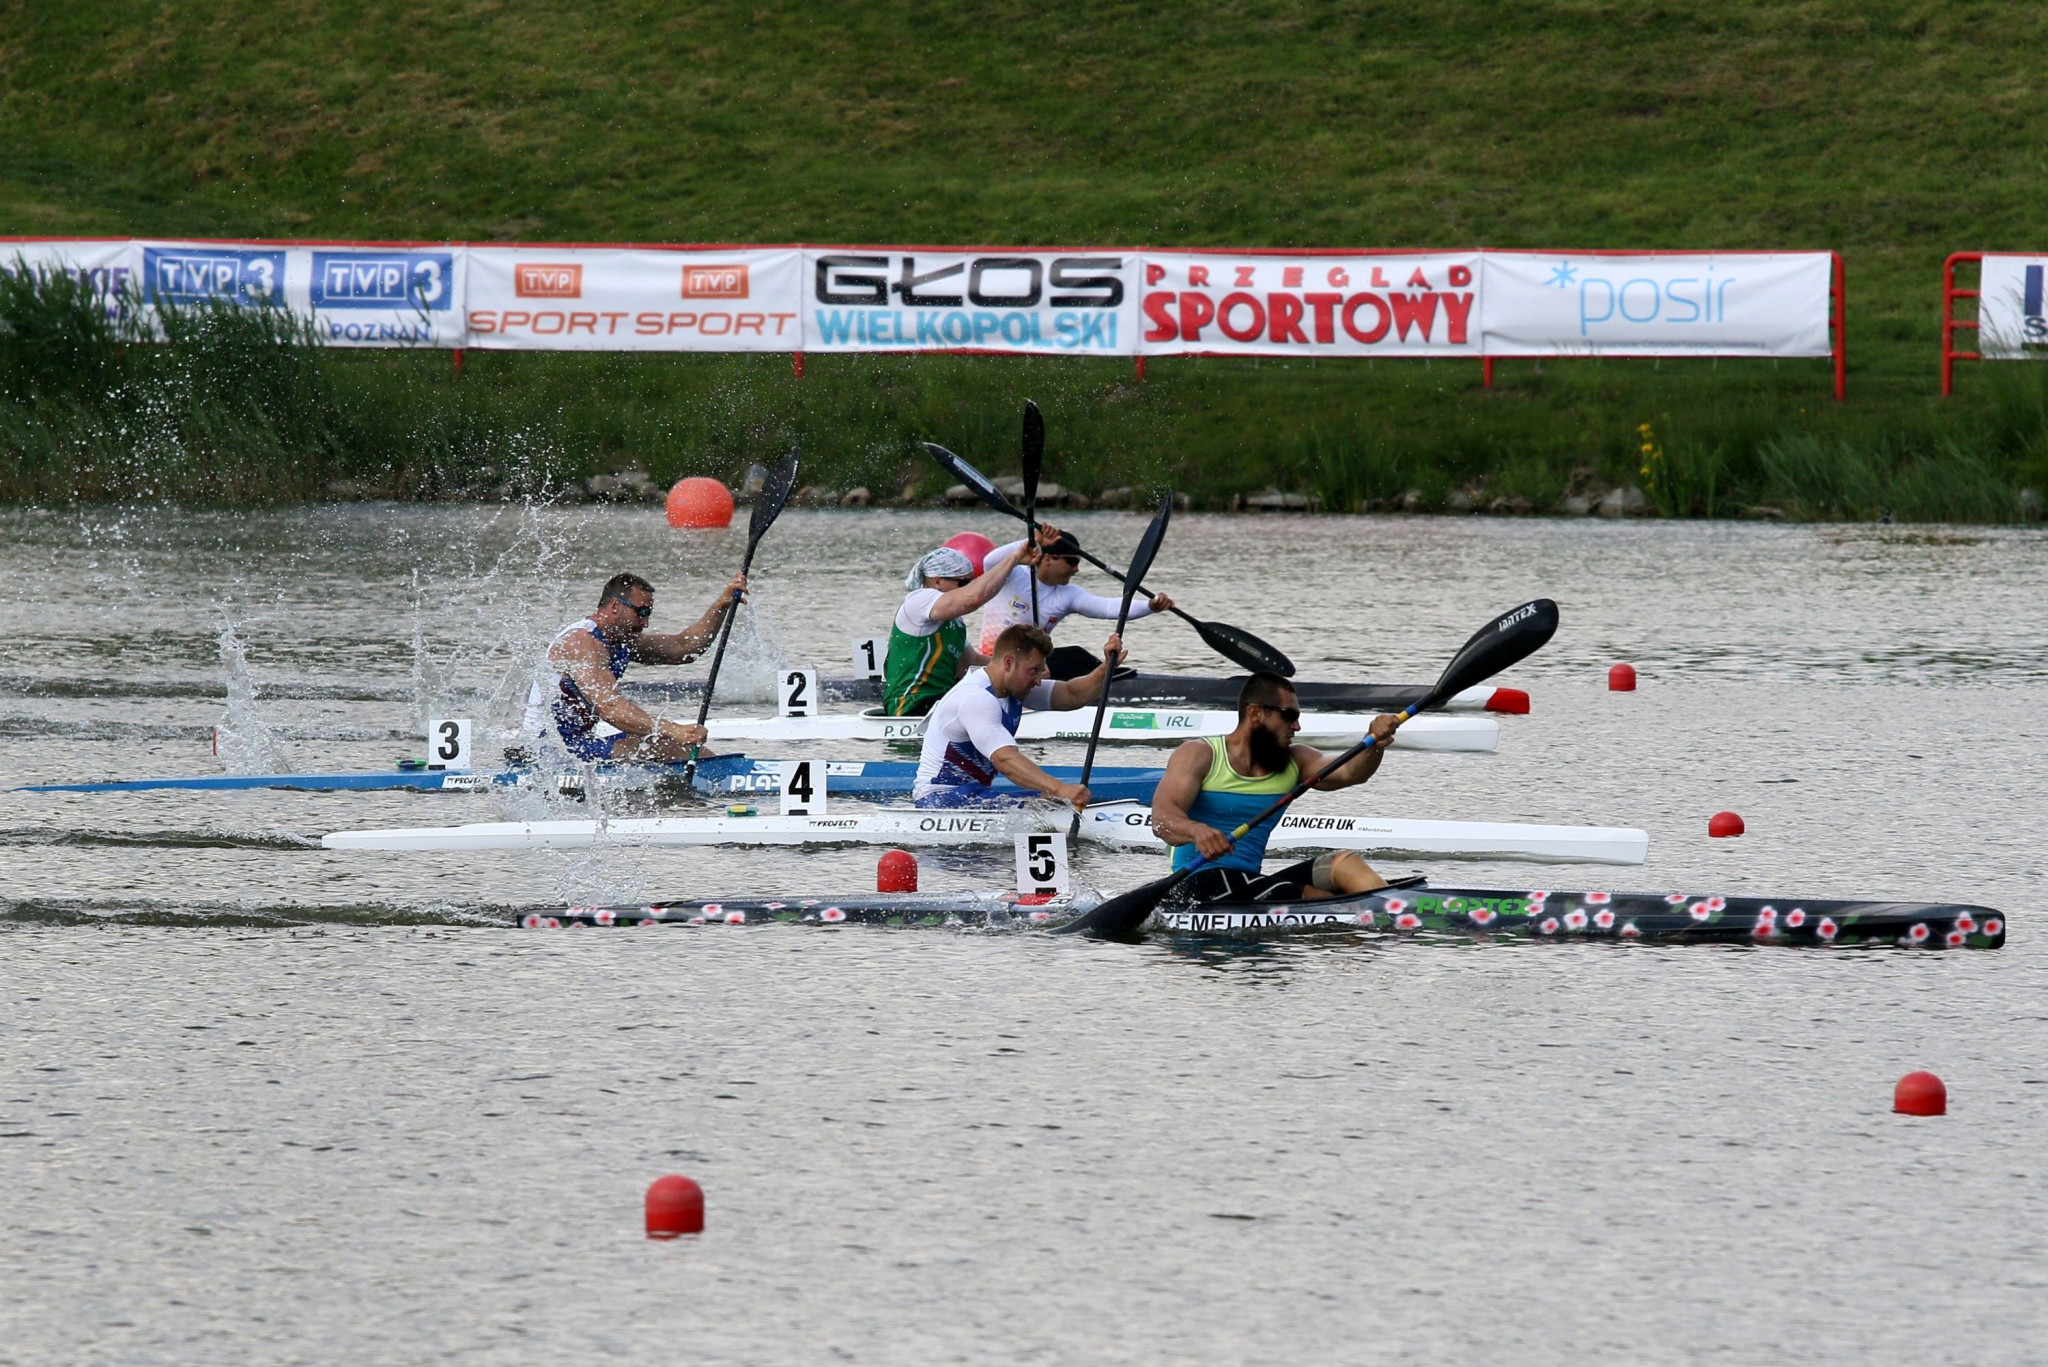 Rio 2016 Paralympic gold medallist and two-time reigning world champion Serhii Yemelianov was one of Ukraine's two winners on the opening day of the Paracanoe European Championships in Poznań ©ECA